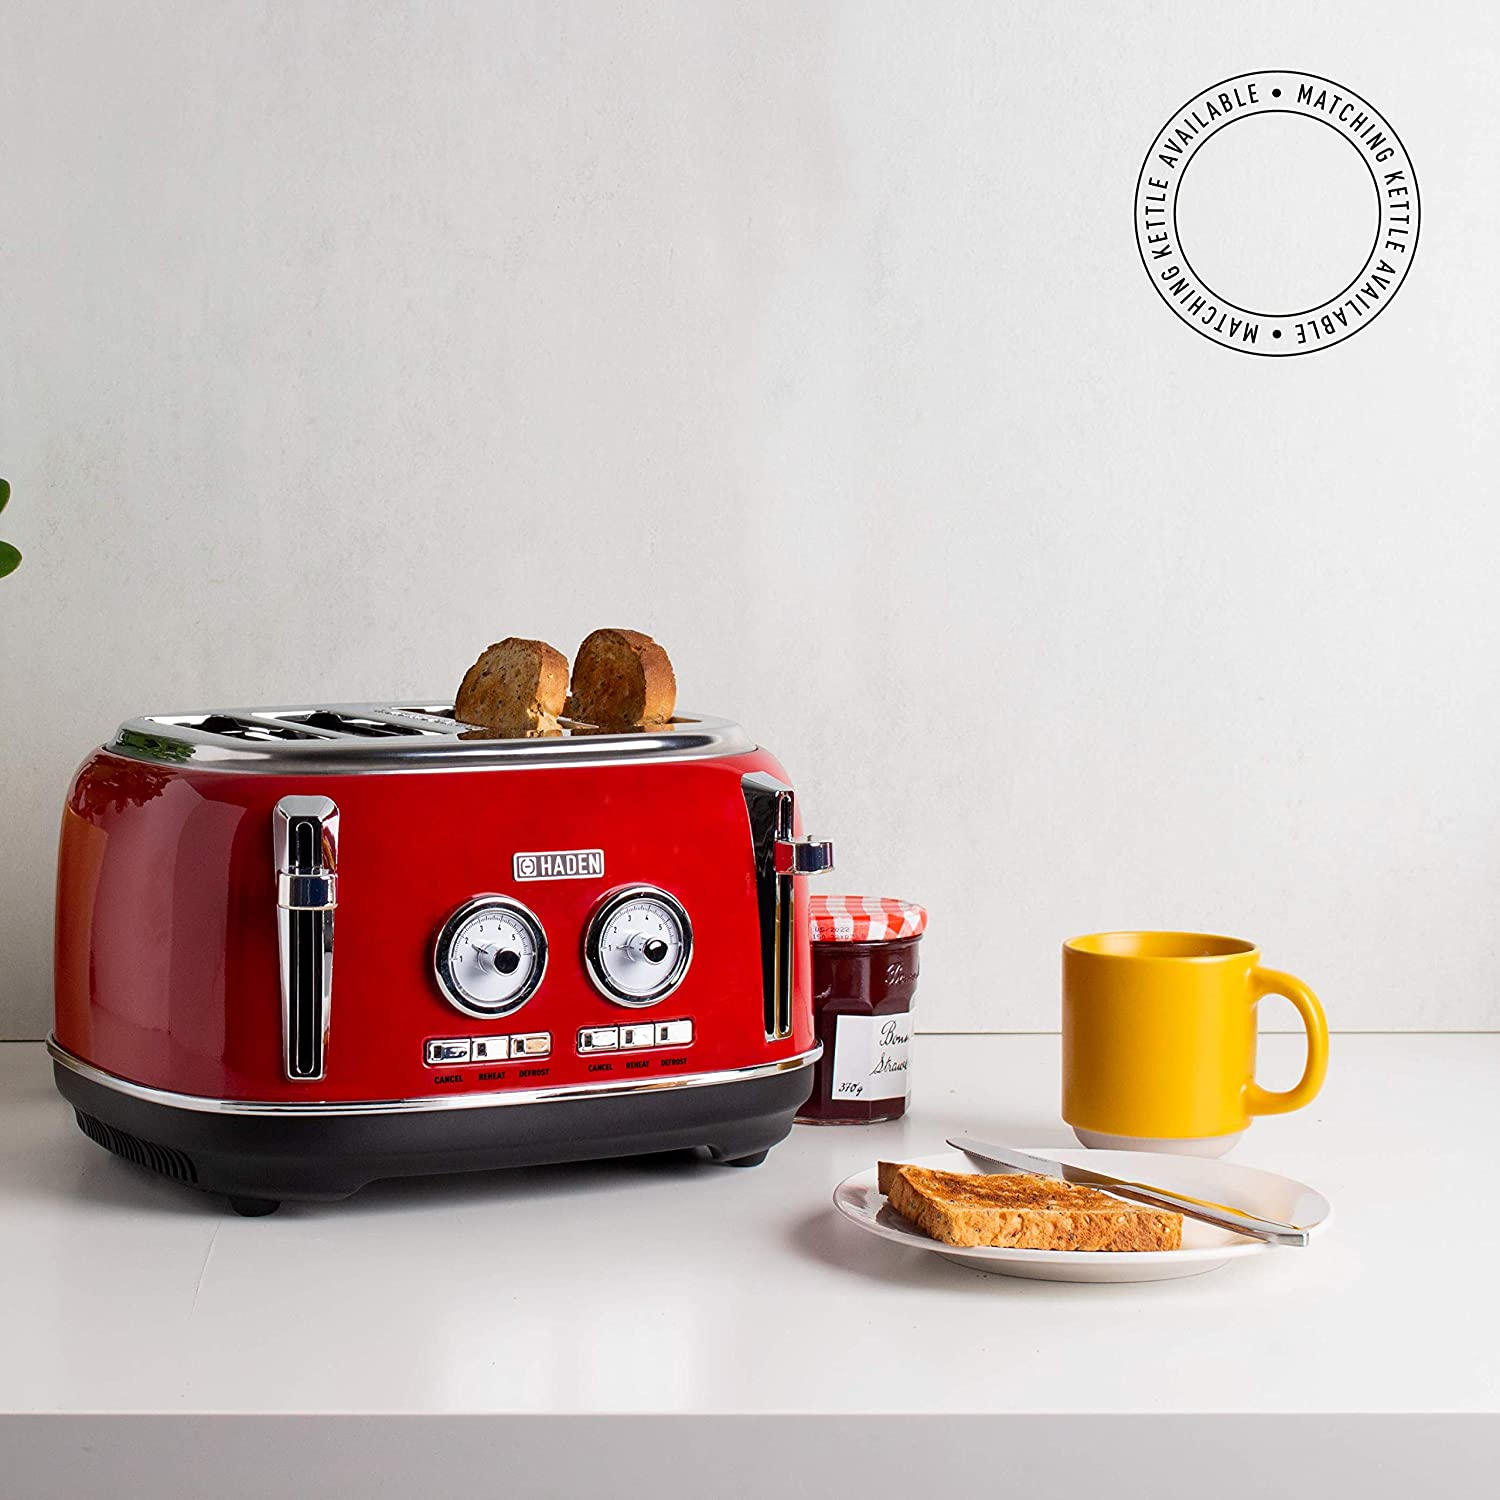 4 Slice Toaster, Red Haden Jersey Toasters